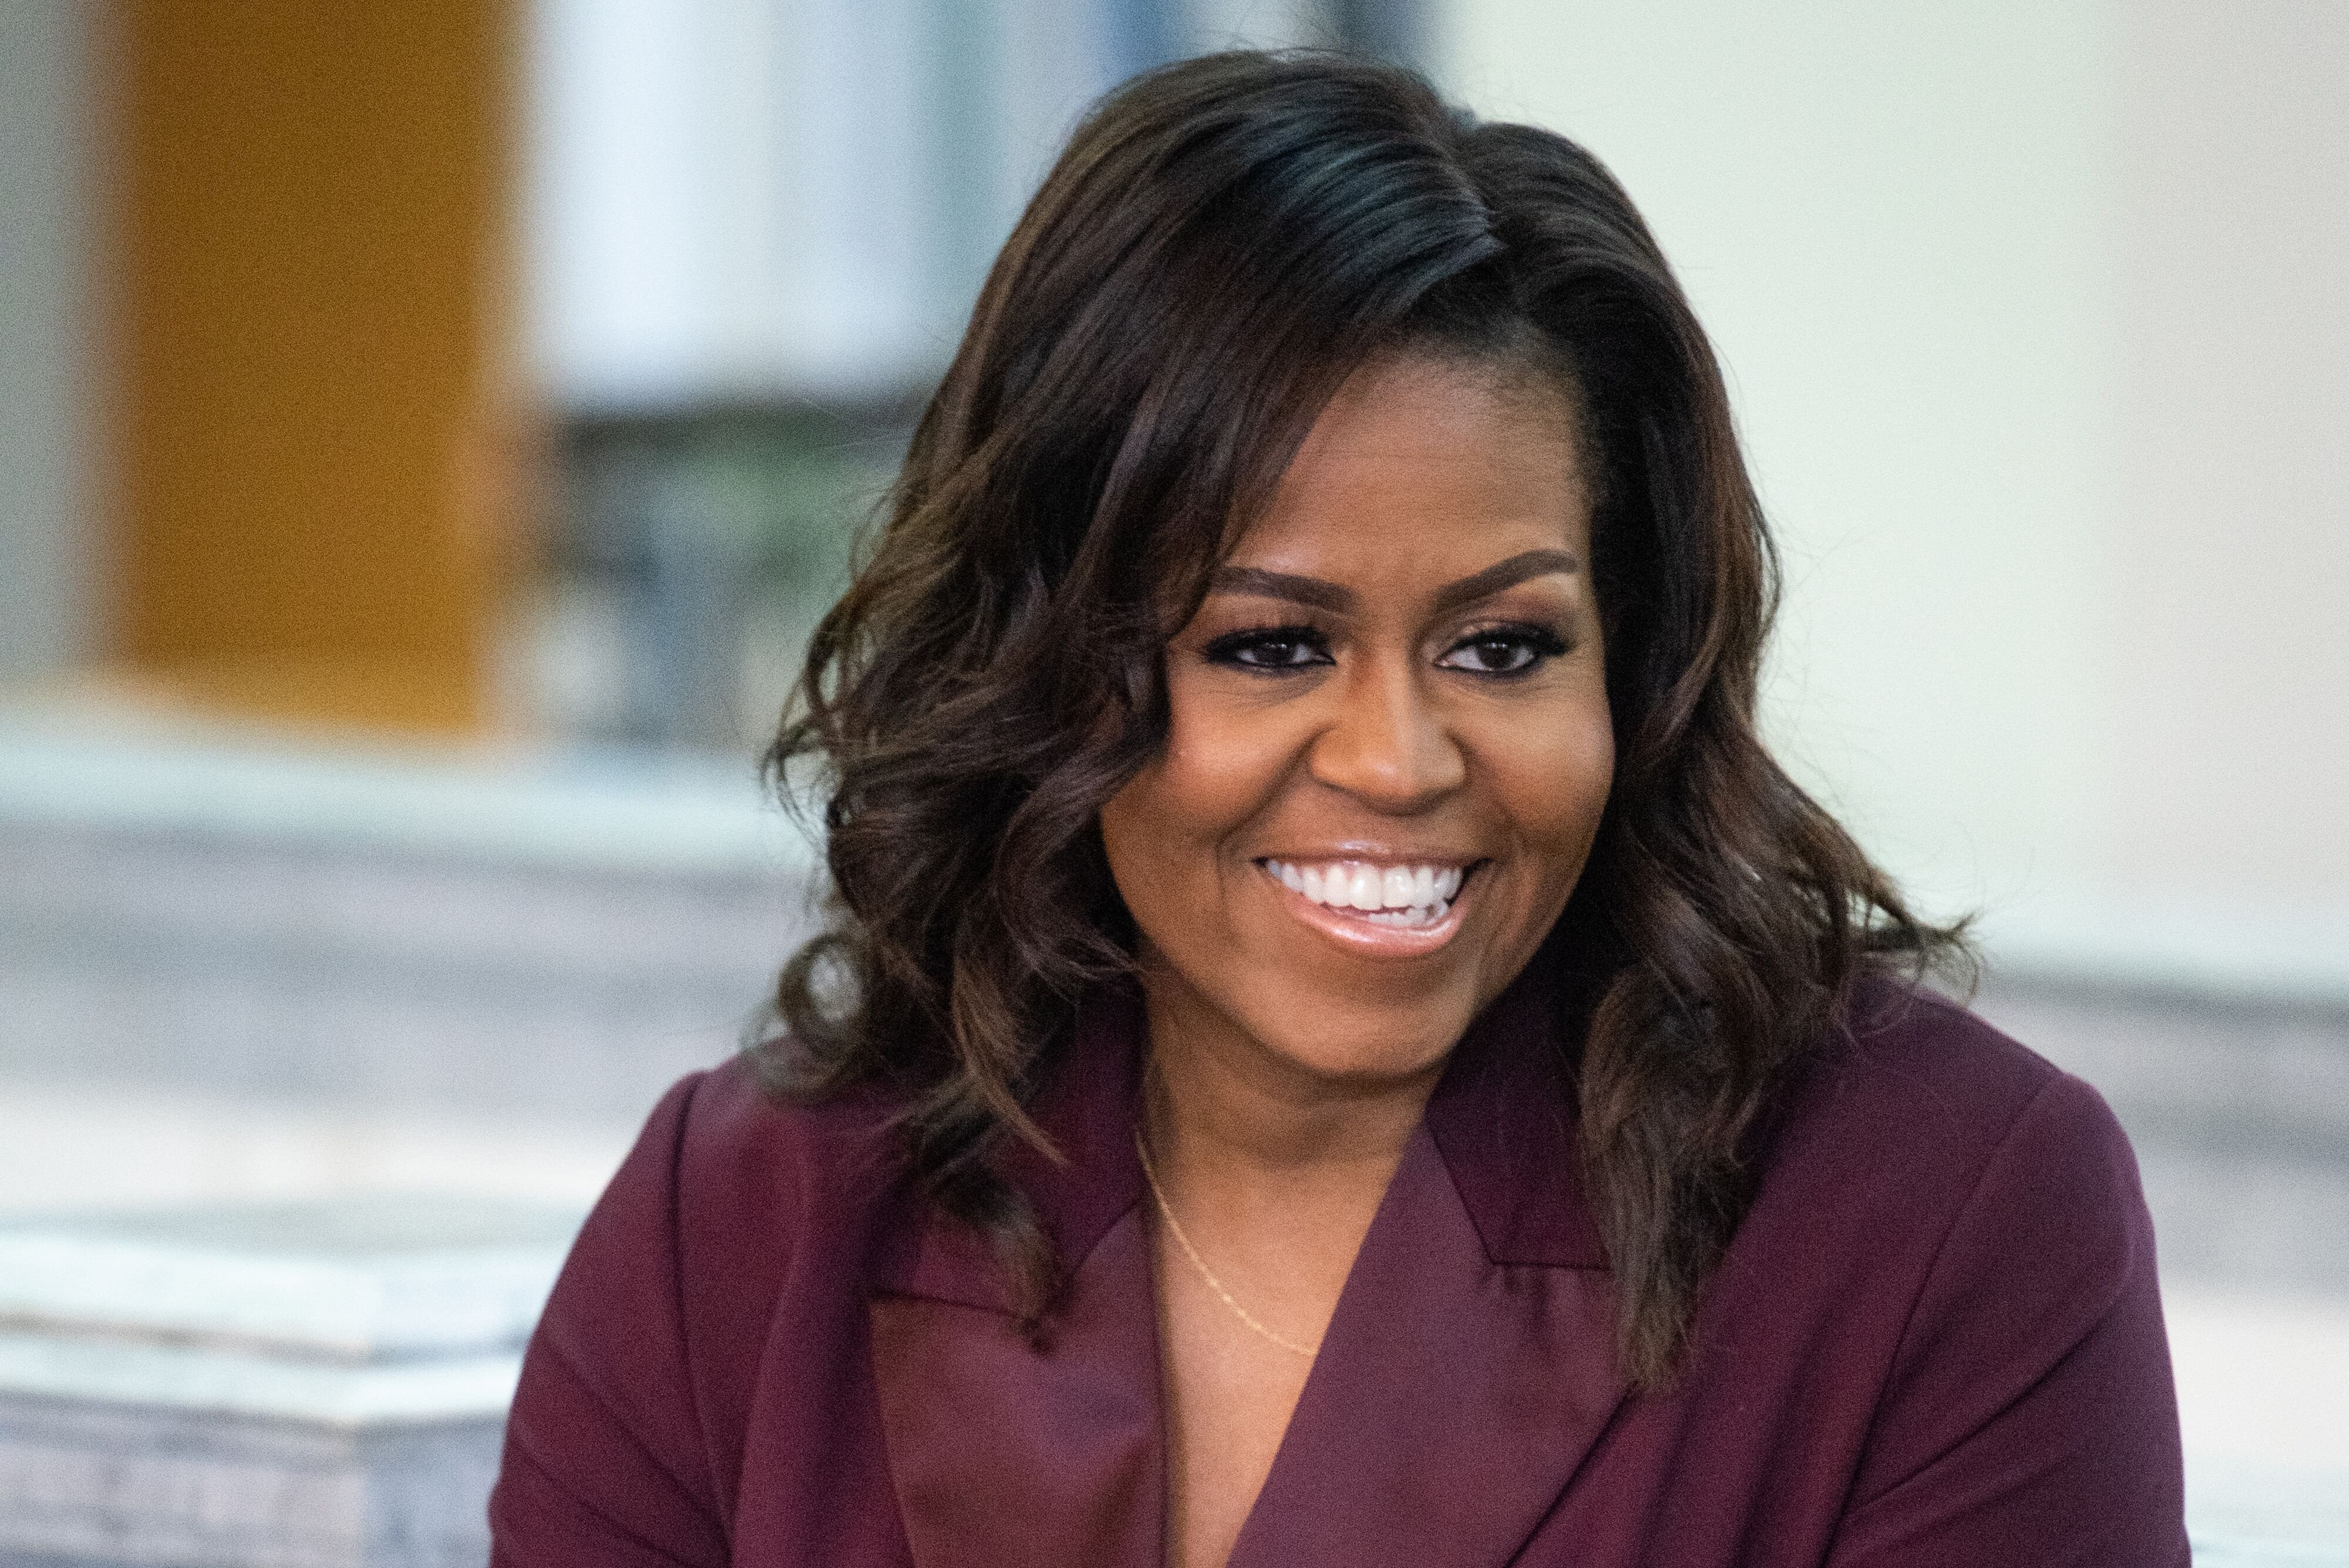 """Michelle Obama promoting her book, """"Becoming"""" in Tacoma, Washington in March 2019.   Photo: Getty Images"""